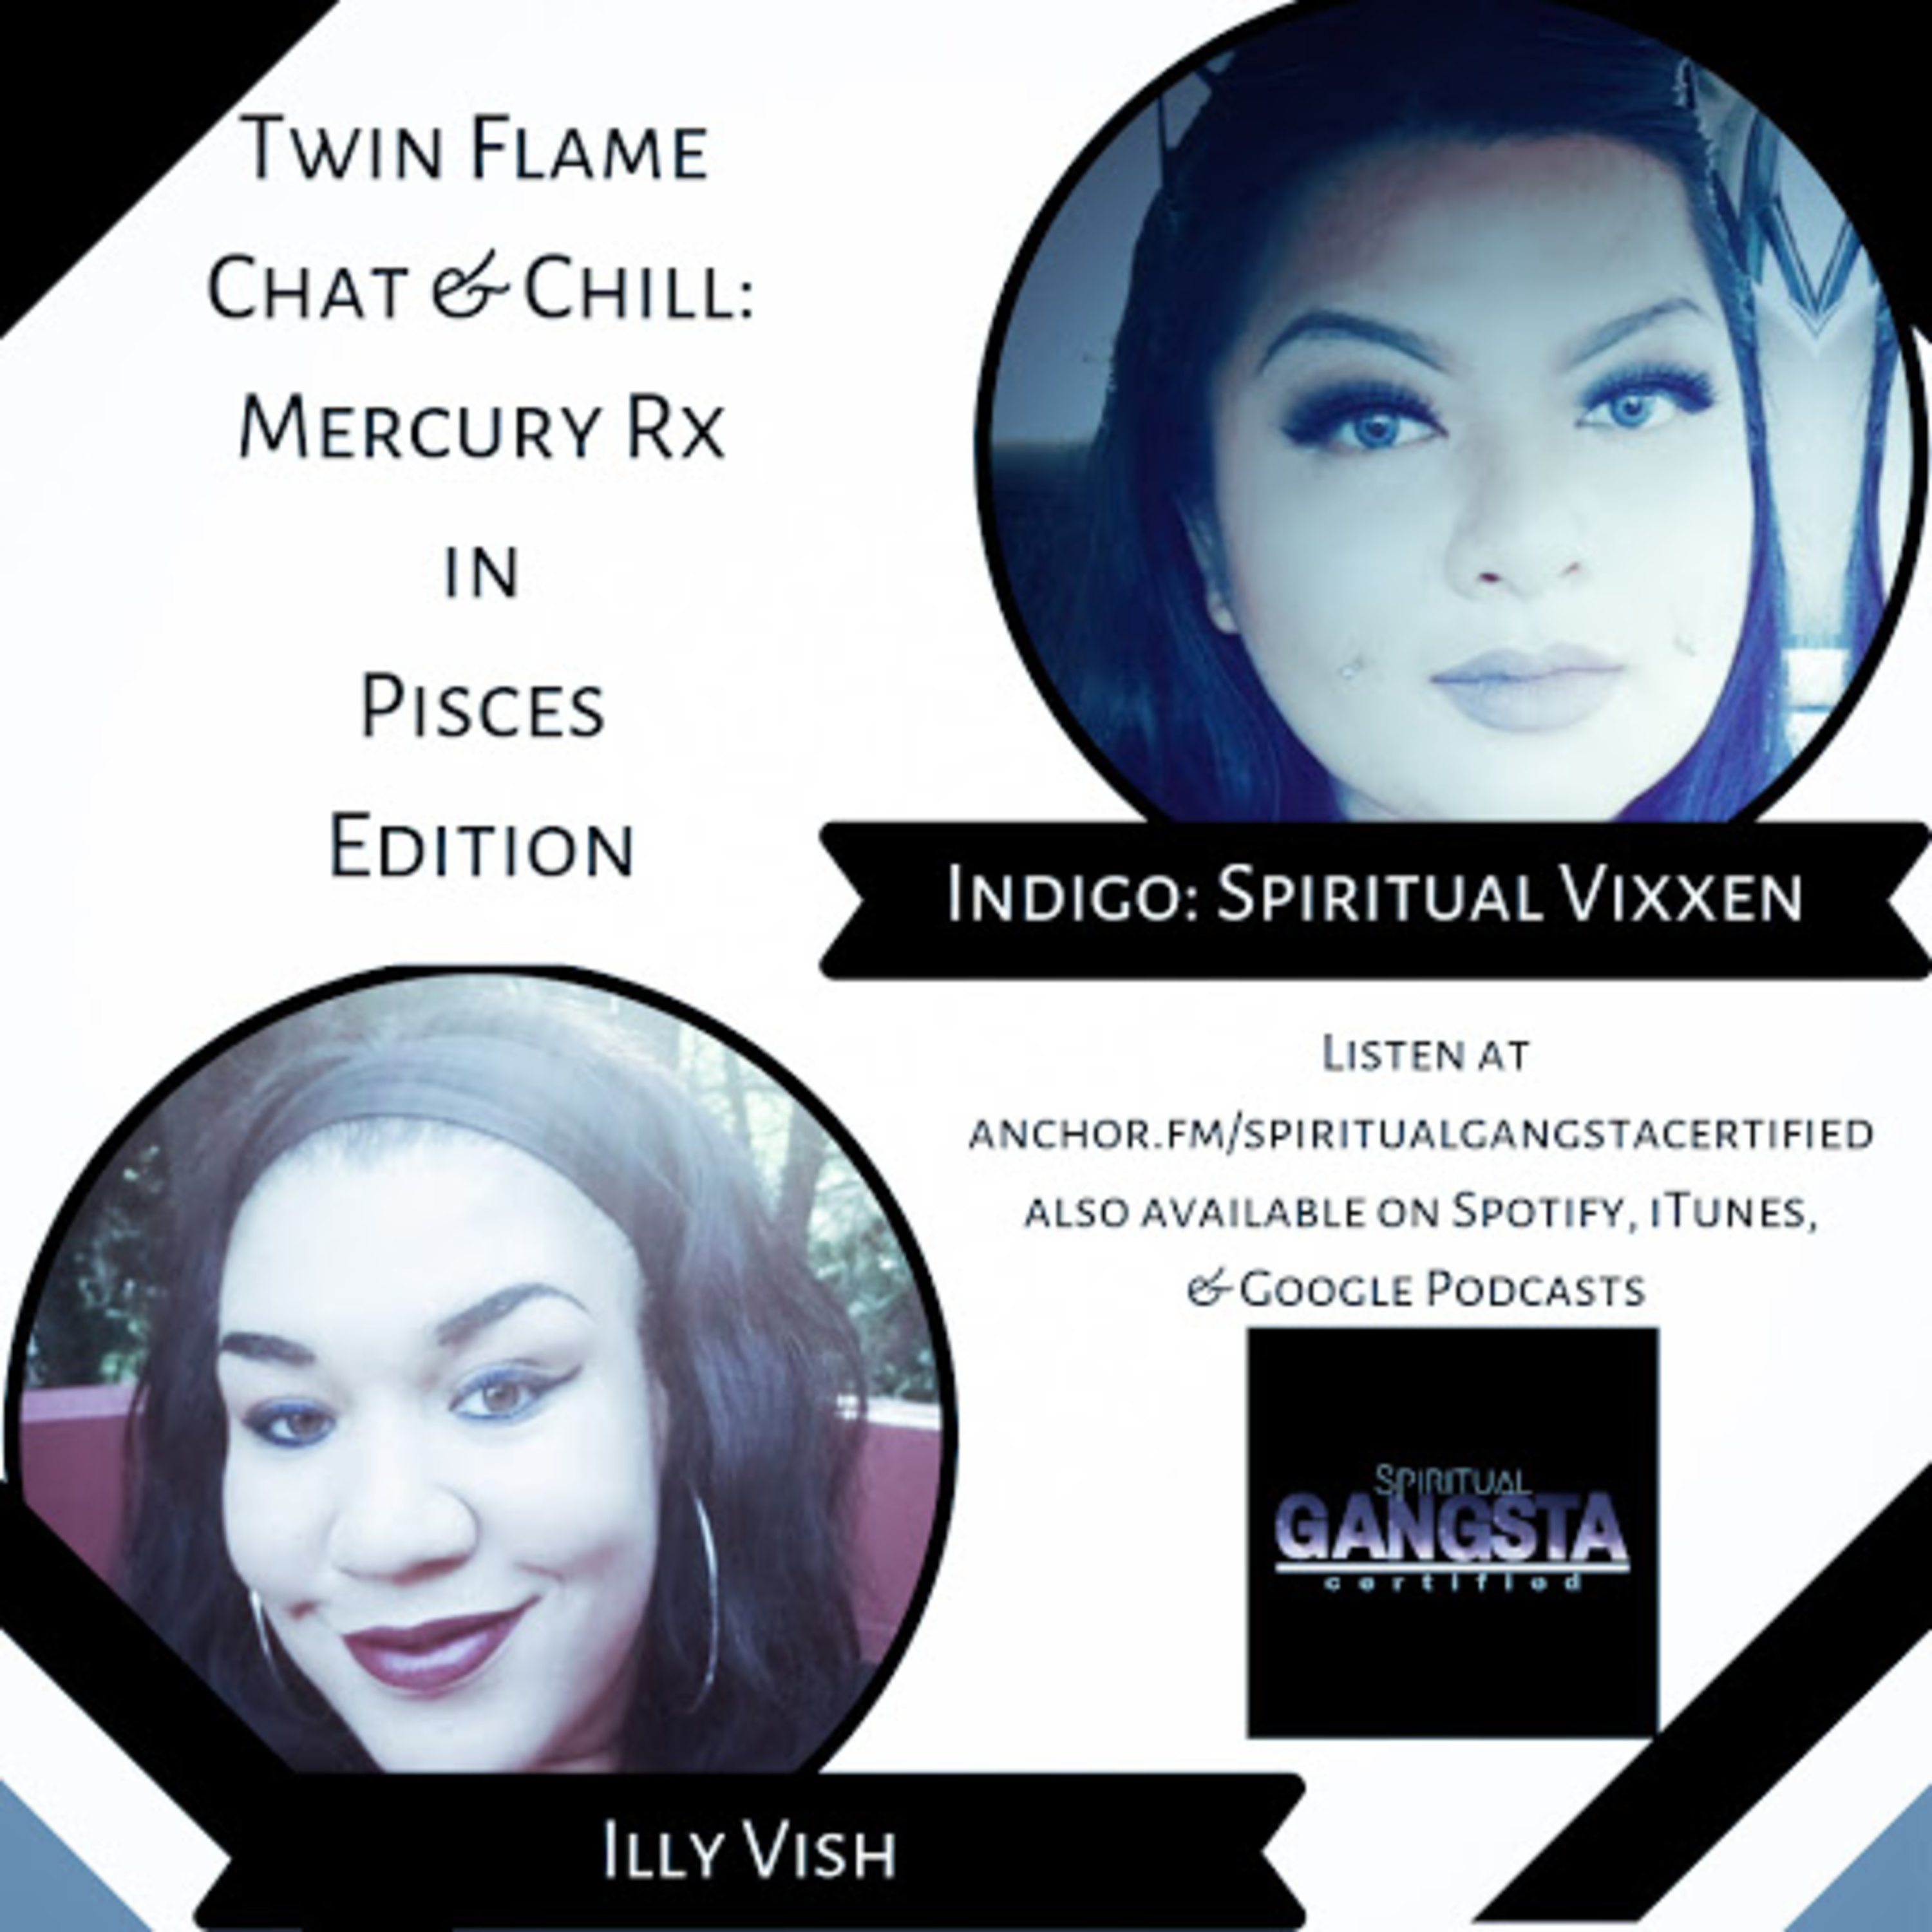 Episode 134: Twin Flame Chat & Chill: Mercury Rx in Pisces Edition with Indigo aka Spiritual Vixxen